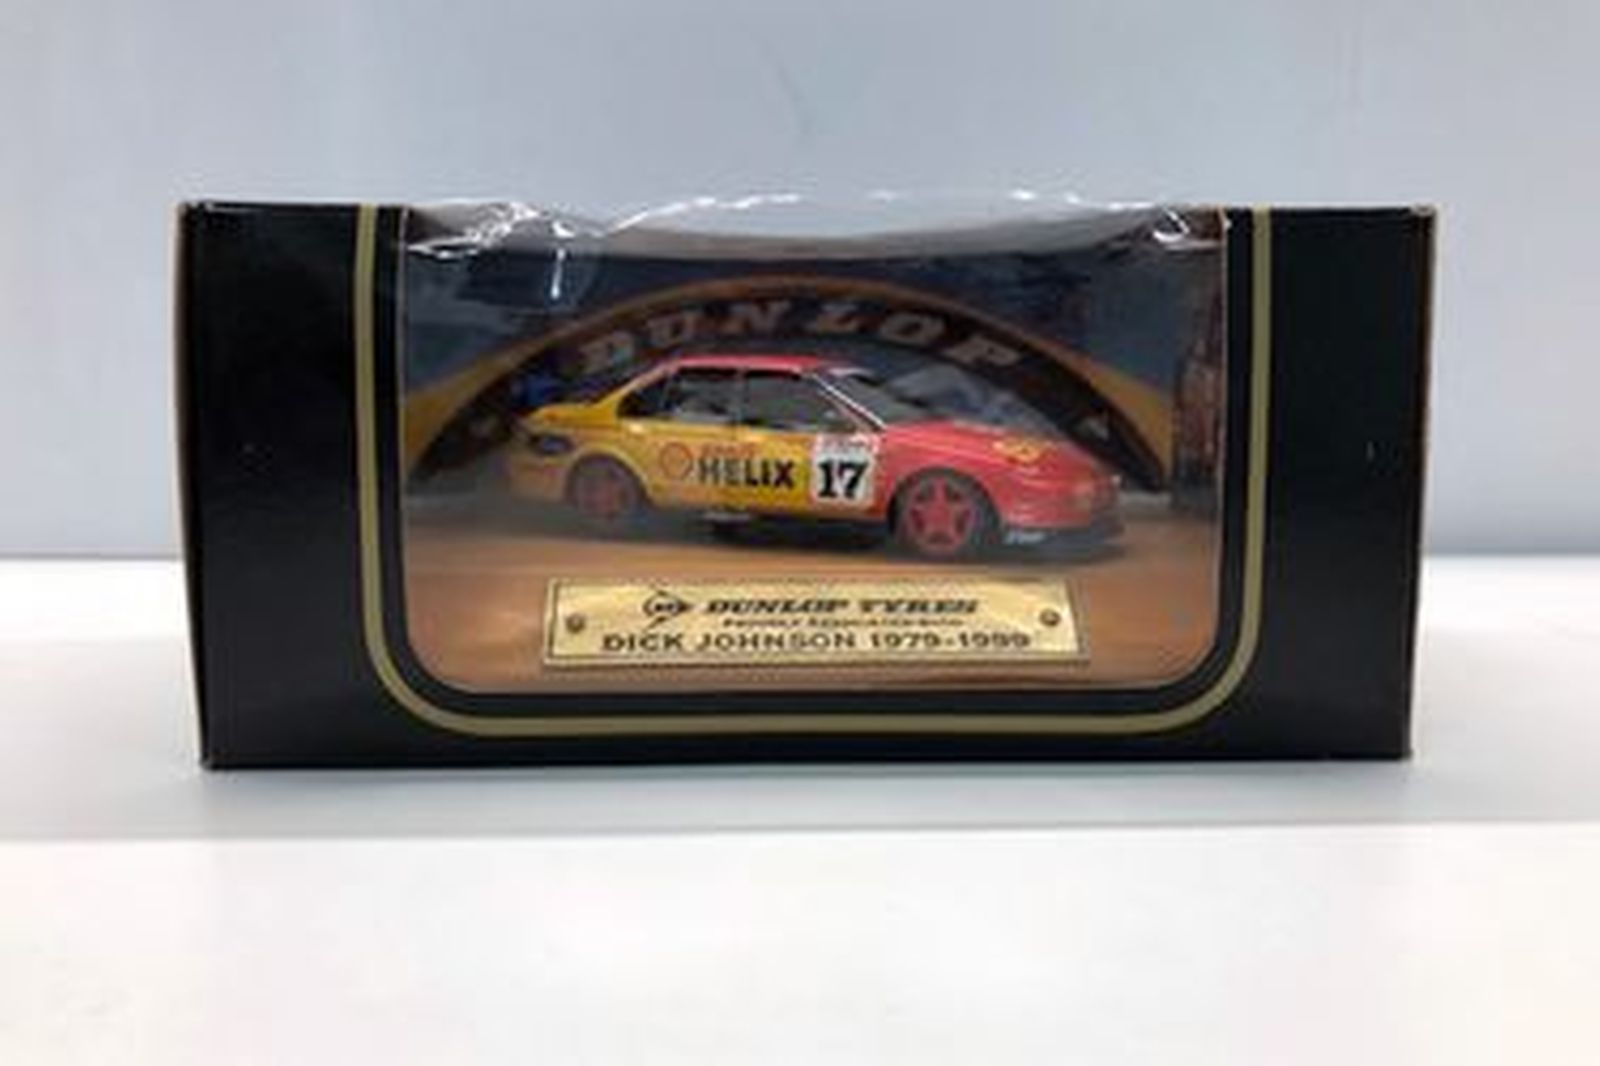 Model Car - Dick Johnson 1979/1999 Dunlop Tyres Shell Helix Car #17